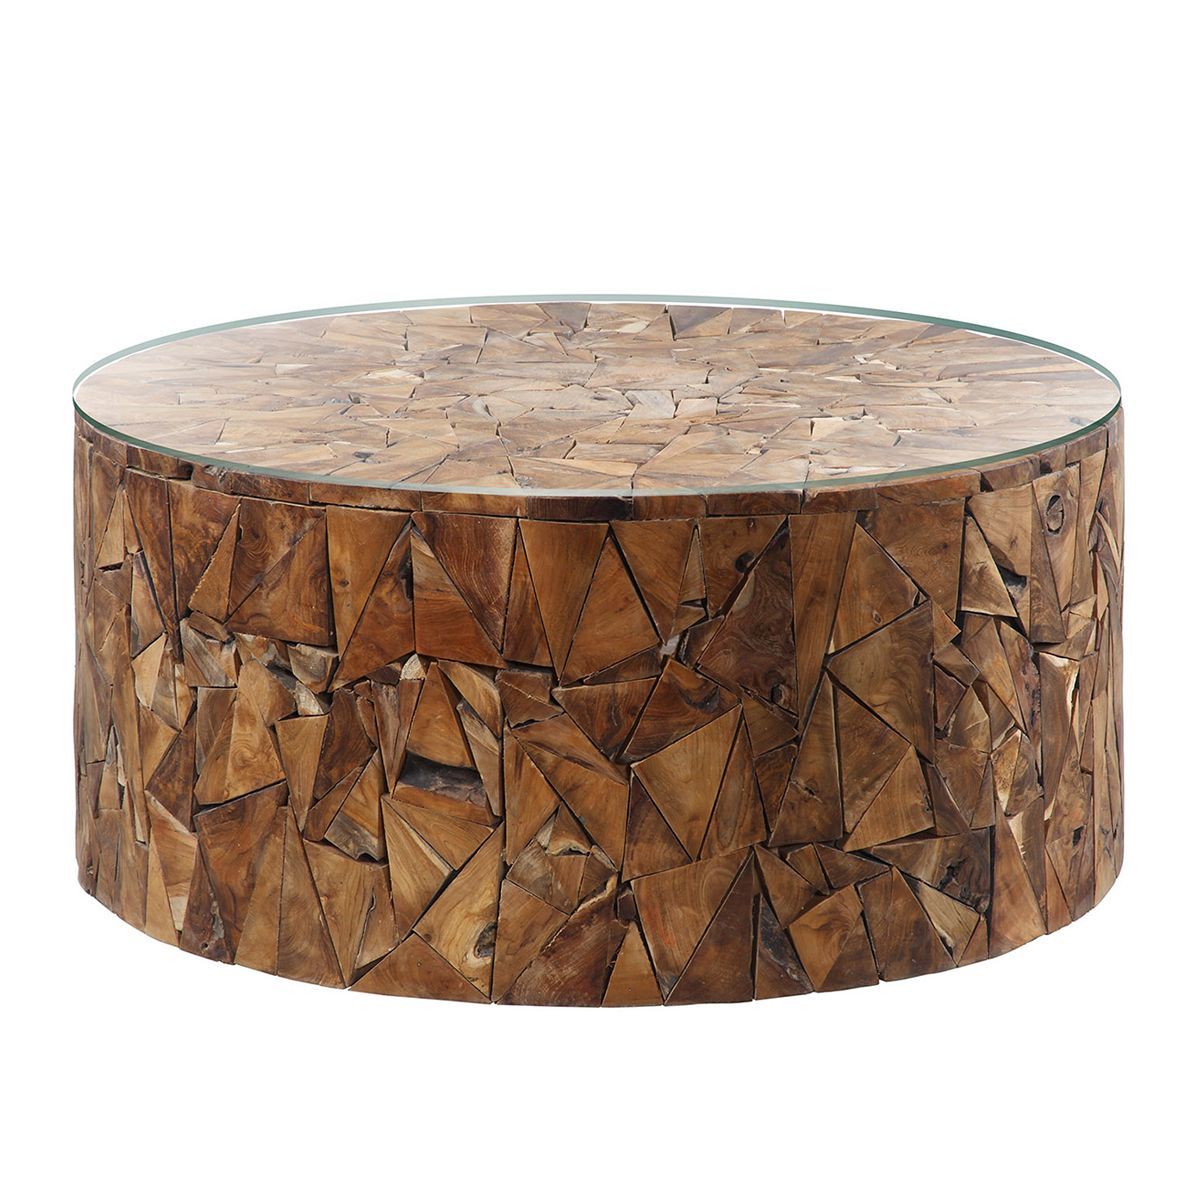 Triangular Pieces Of Beautiful Teak Wood Fit Together To Form This Round Coffee Table Complete With Glas Coffee Table Types Of Coffee Tables Dining Table Legs [ 1200 x 1200 Pixel ]